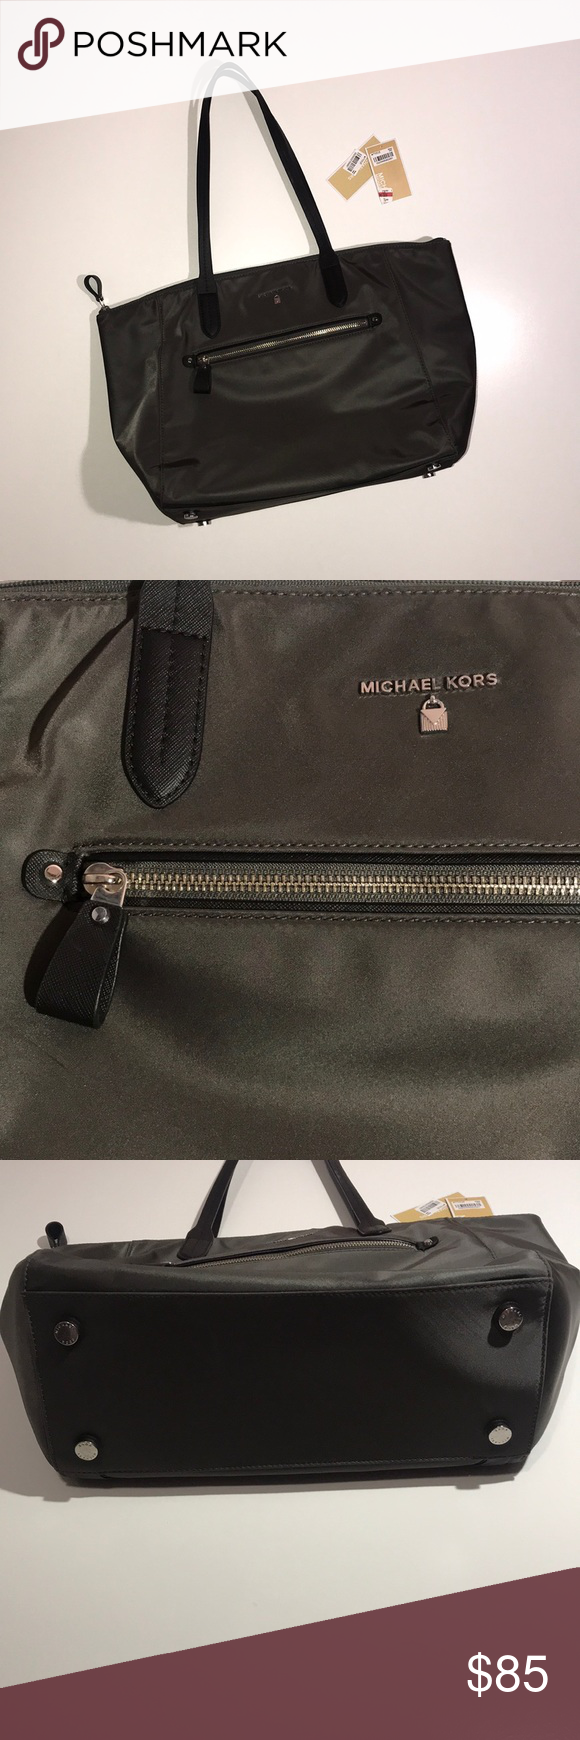 0f2e89a0f6d2 NWT Michael Kors Graphite grey nylon Kelsey tote NWT Michael Kors graphite  grey nylon large zip Kelsey tote. Perfect condition.